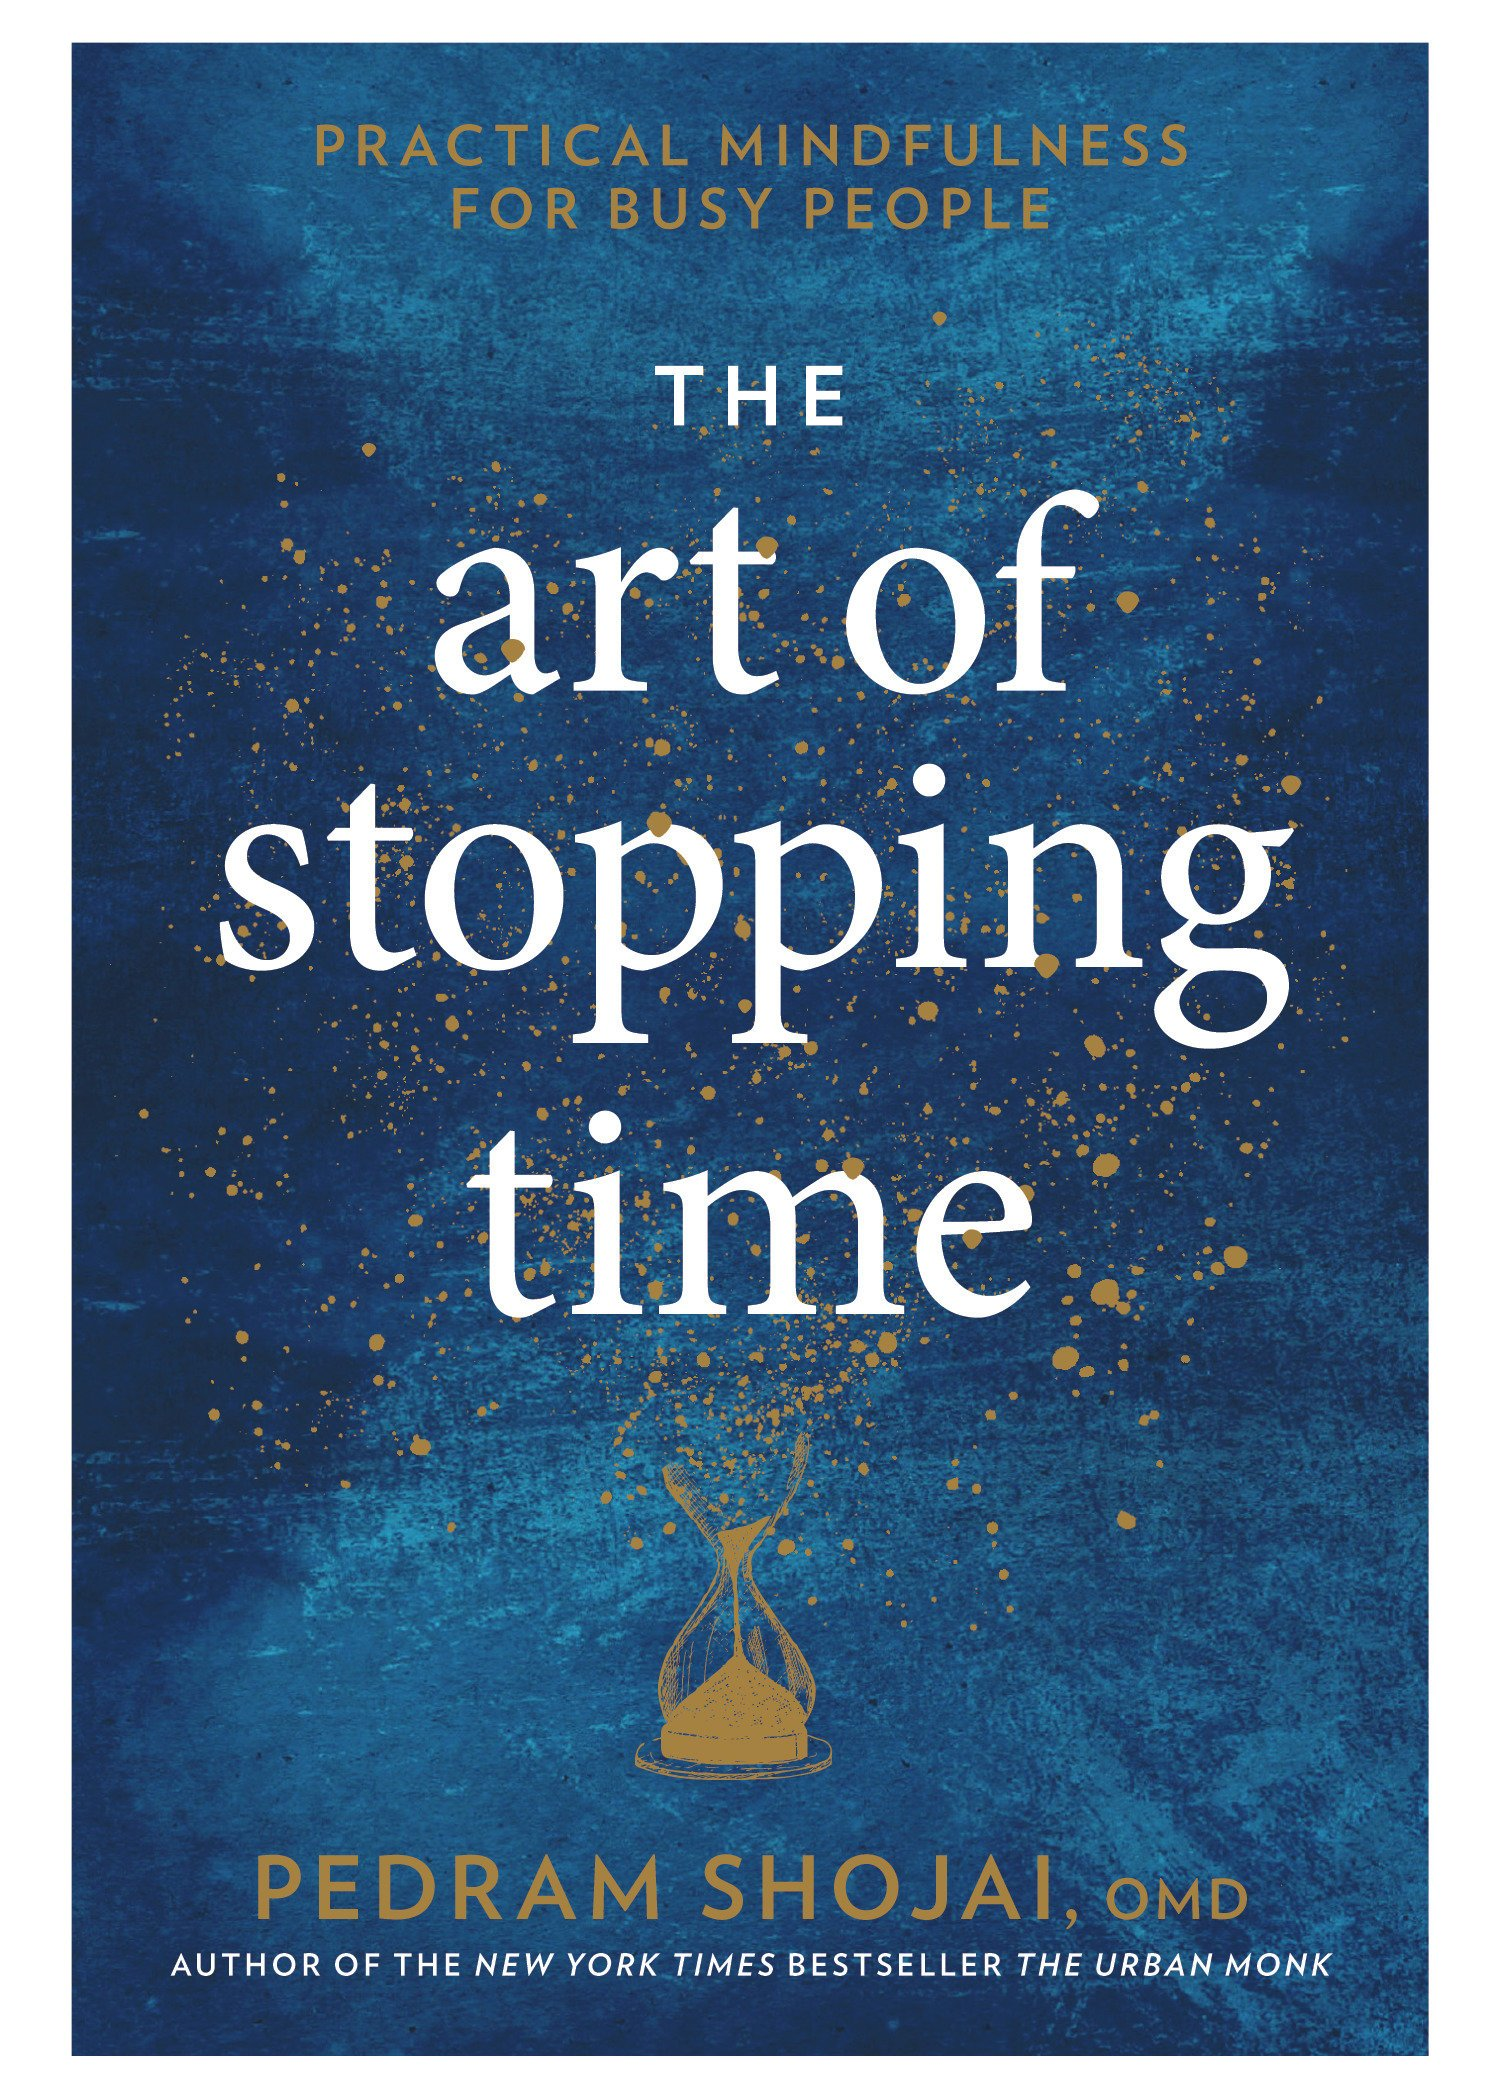 The Art of Stopping Time: Practical Mindfulness for Busy People:  Amazon.co.uk: Pedram Shojai: 9781623369095: Books